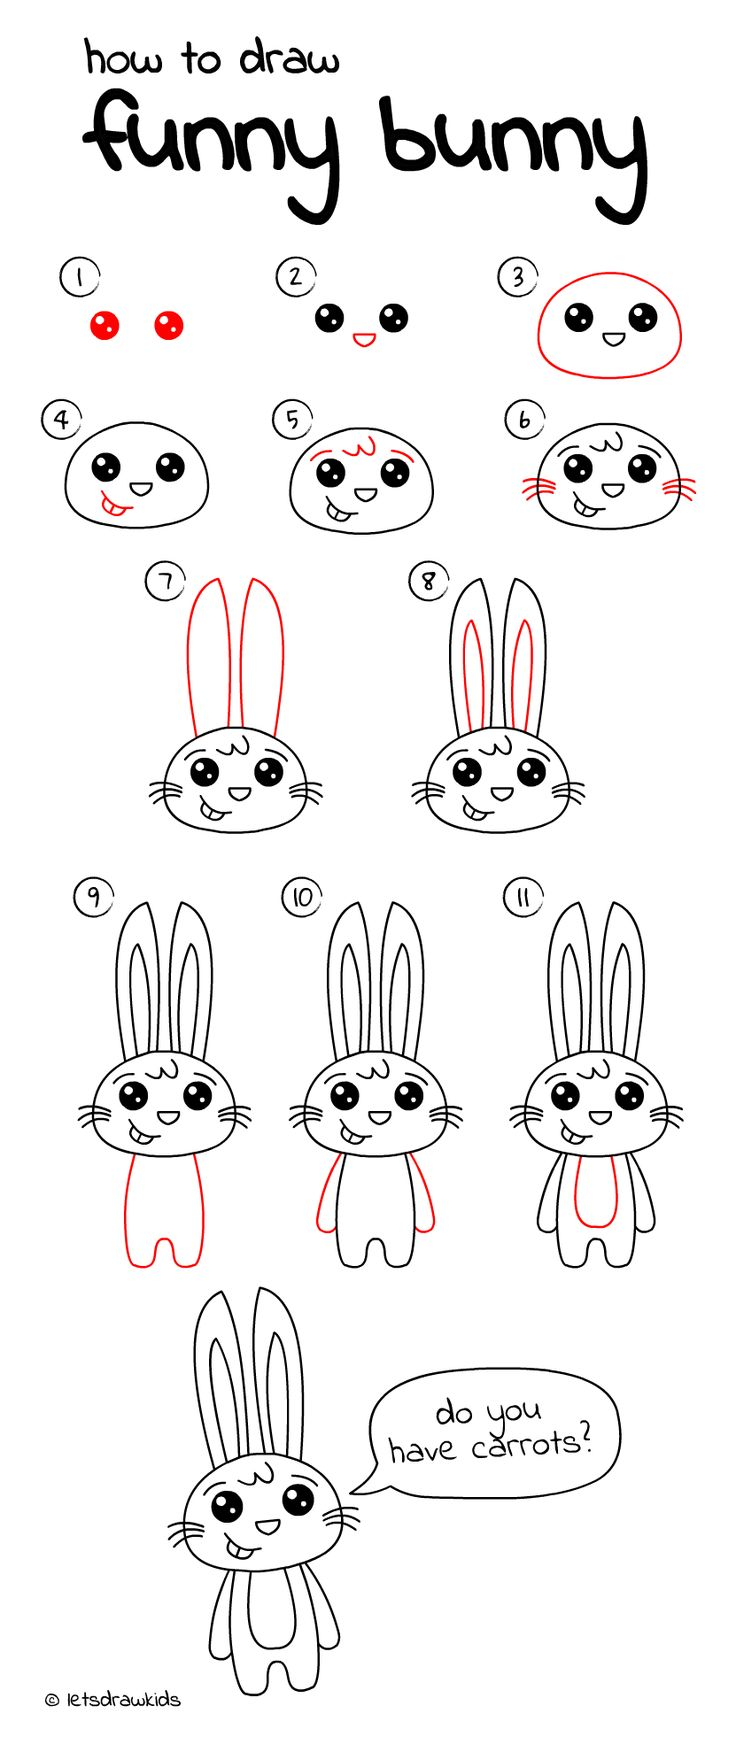 Uncategorized Draw Kids best 25 drawing for kids ideas on pinterest easy drawings how to draw funny bunny step by perfect kids